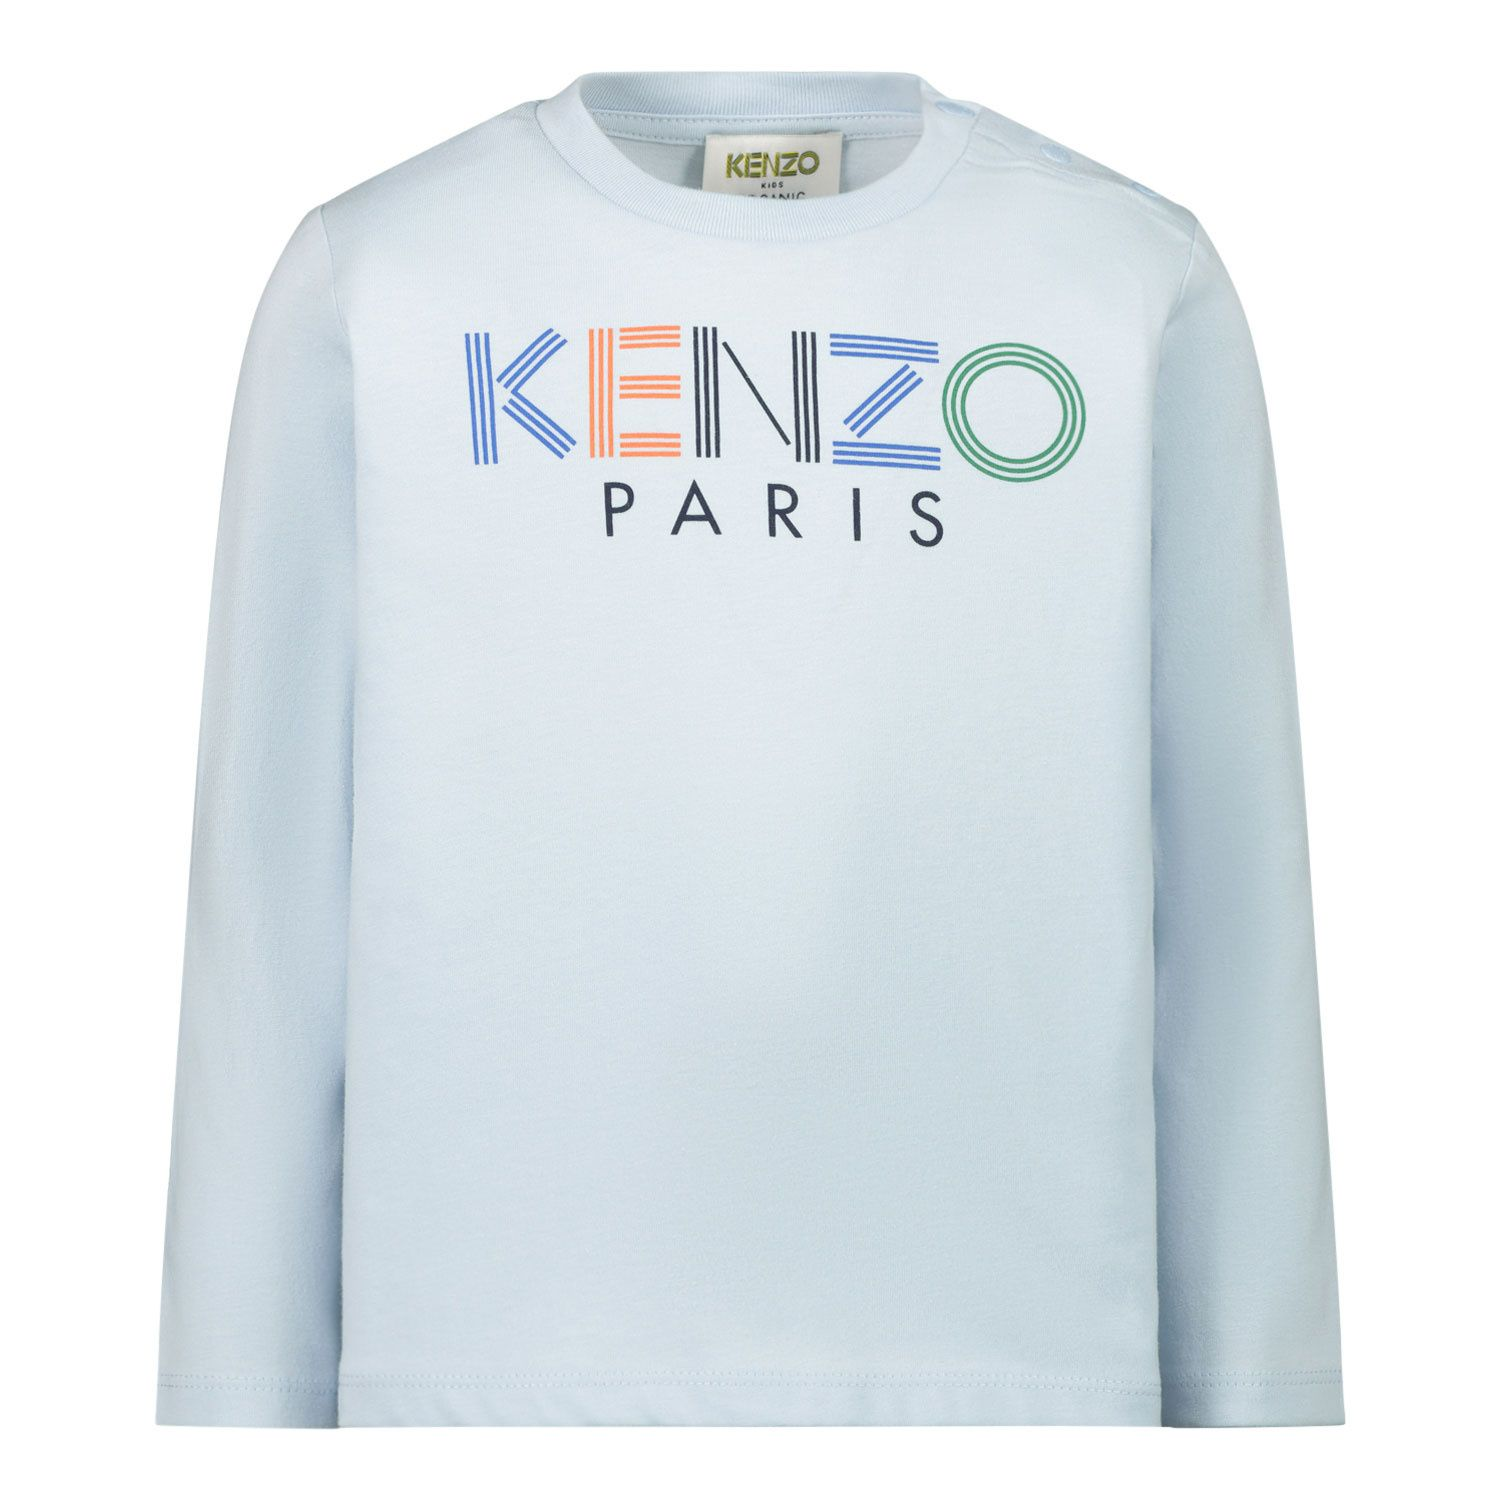 Picture of Kenzo KR10557 baby shirt light blue